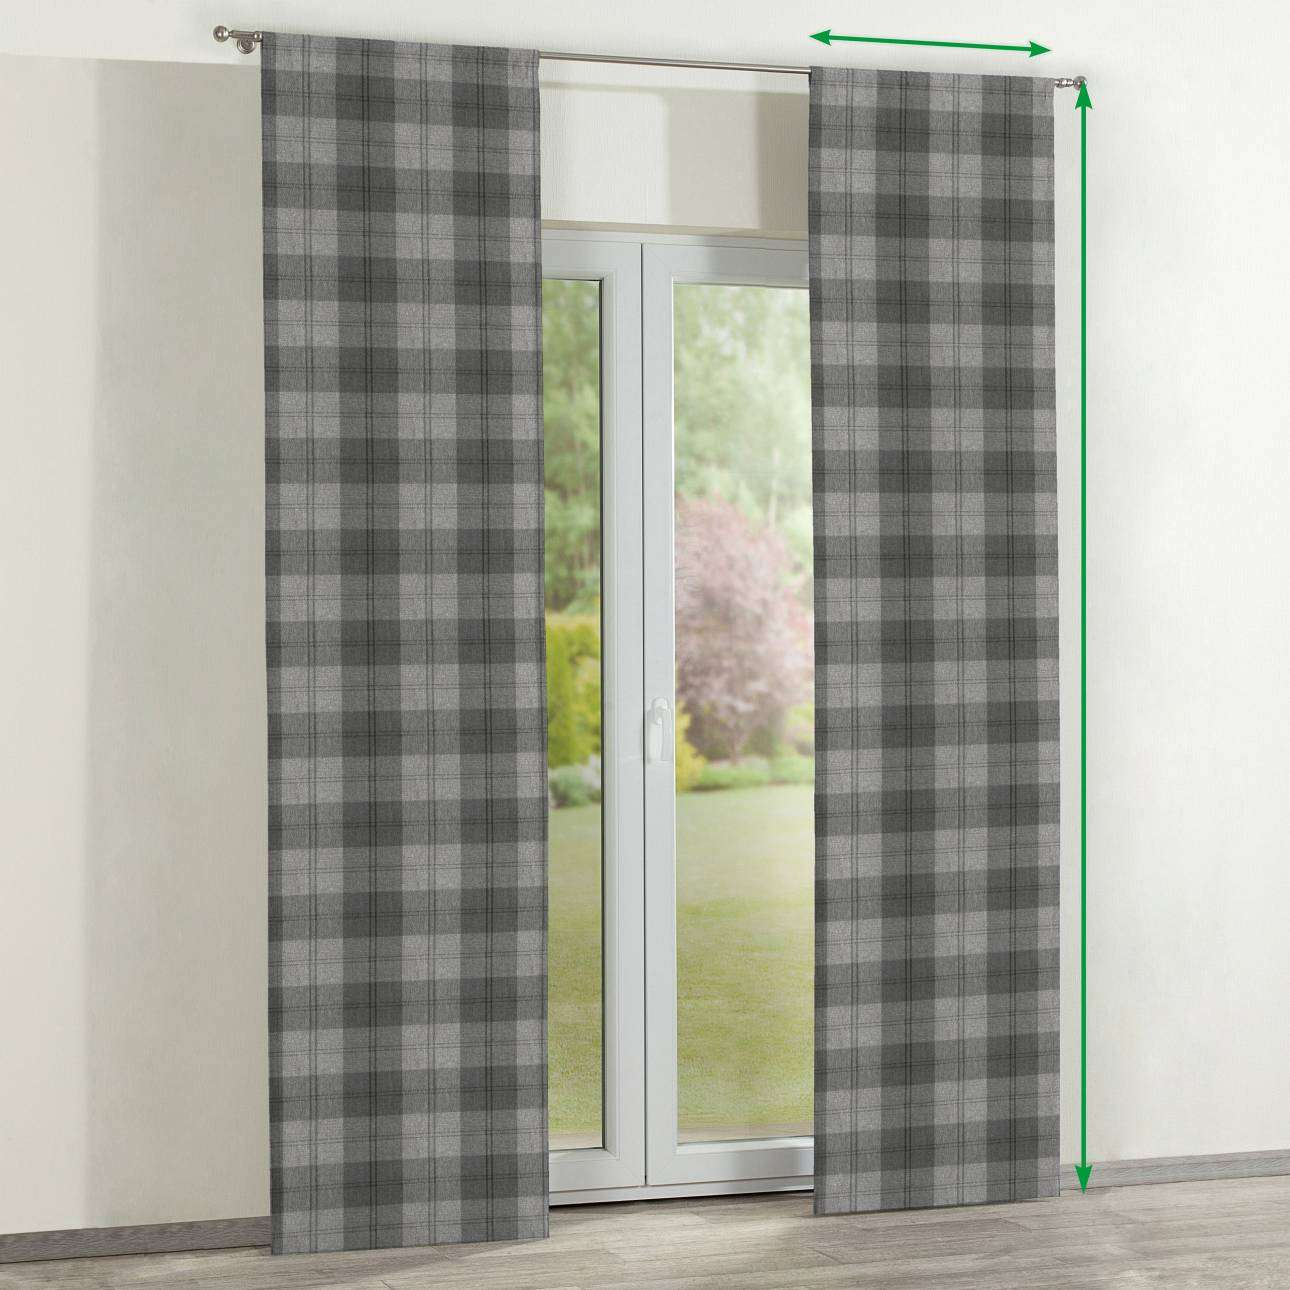 Slot panel curtains – Set of 2 in collection Edinburgh , fabric: 115-75